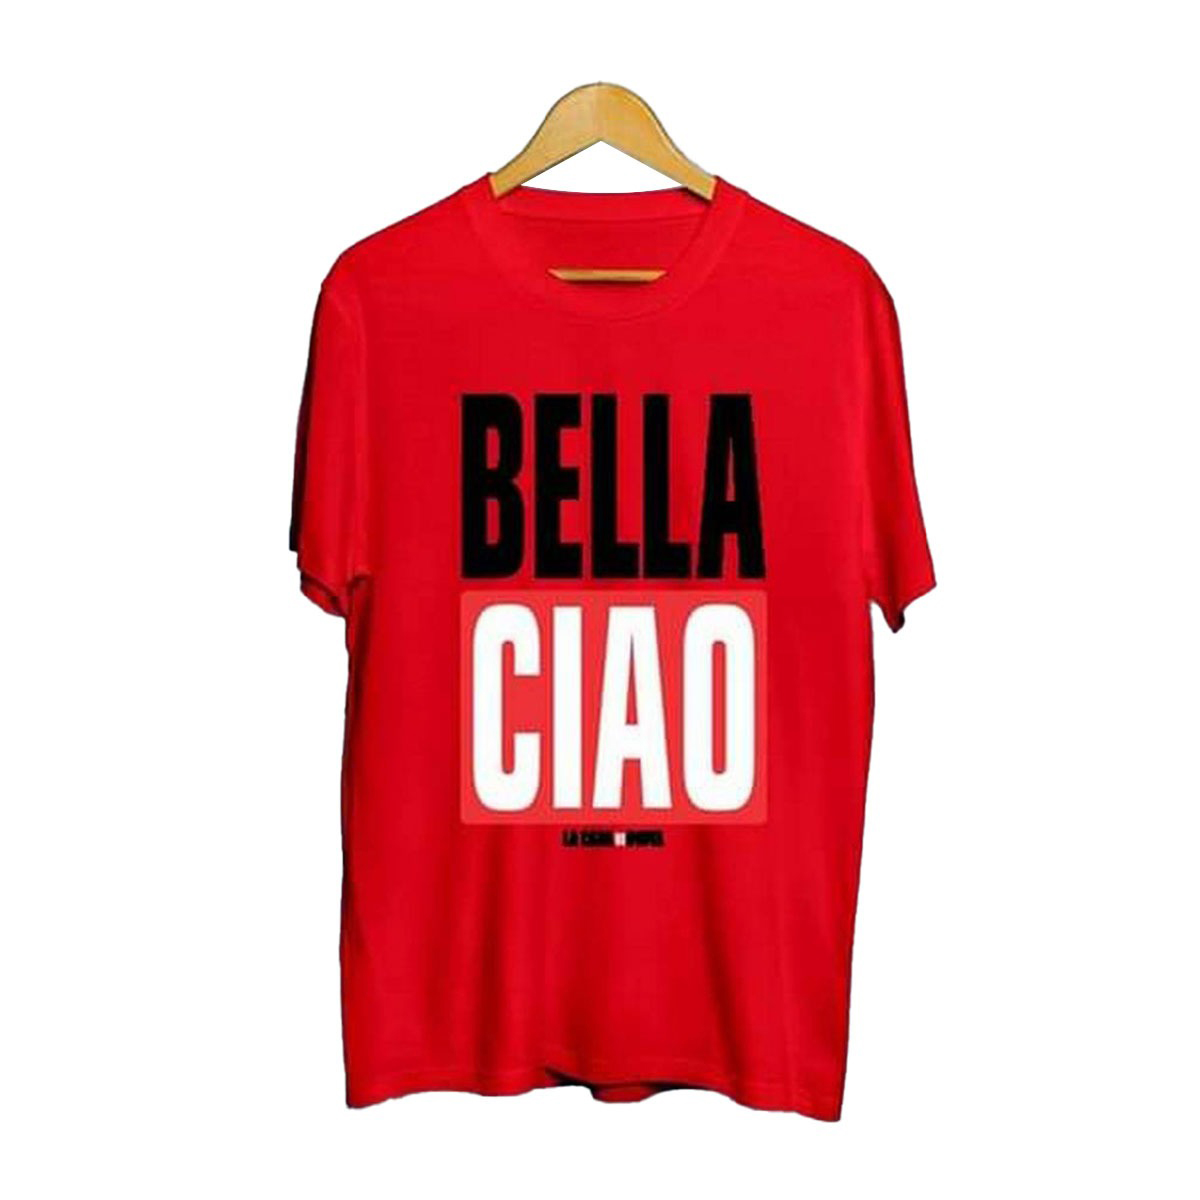 Money Heist Bella Ciao O-Neck T-Shirt For Unisex  New Trendy O-neck T Shirt For Boys Fashion Latest